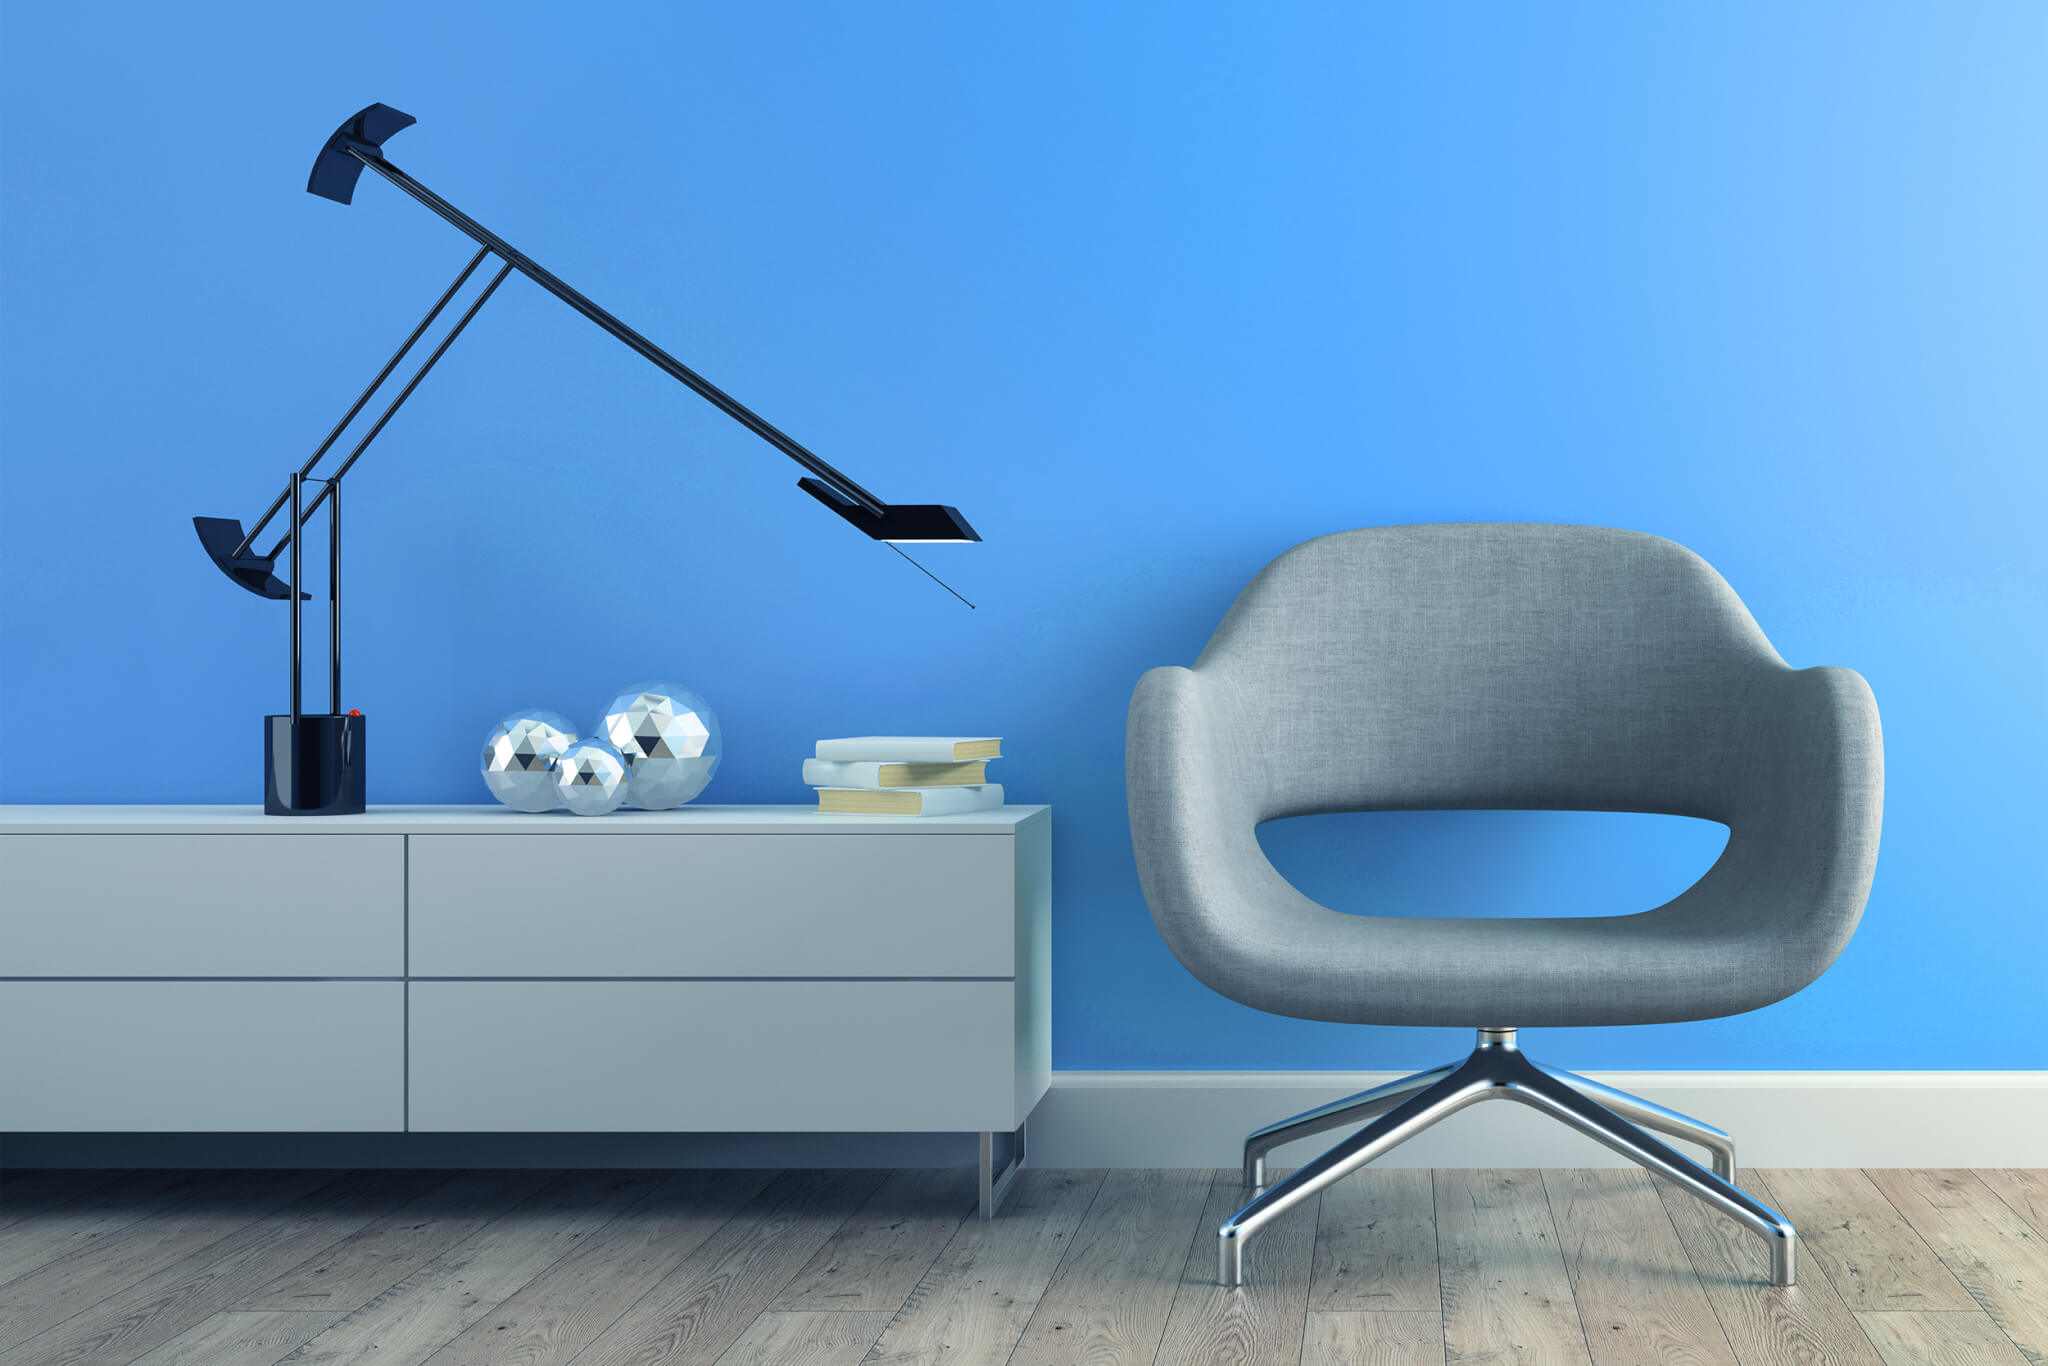 https://oceanusdesign.com.au/wp-content/uploads/2017/05/image-chair-blue-wall-1.jpg